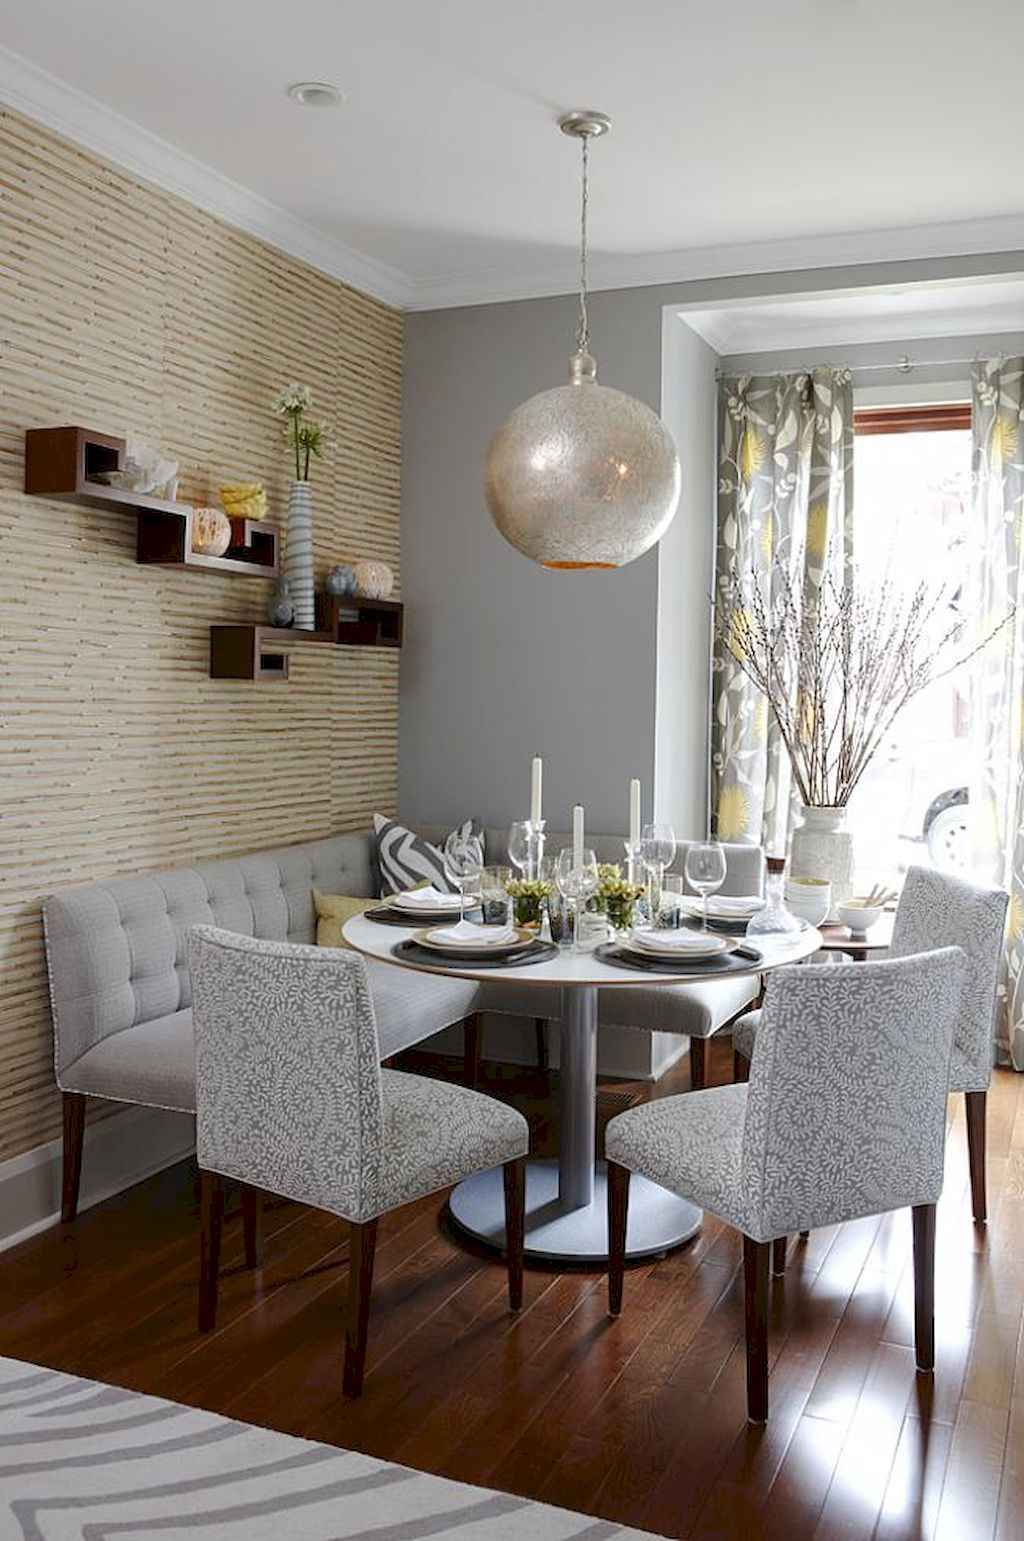 Small dining room table and chair ideas on a budget (42)